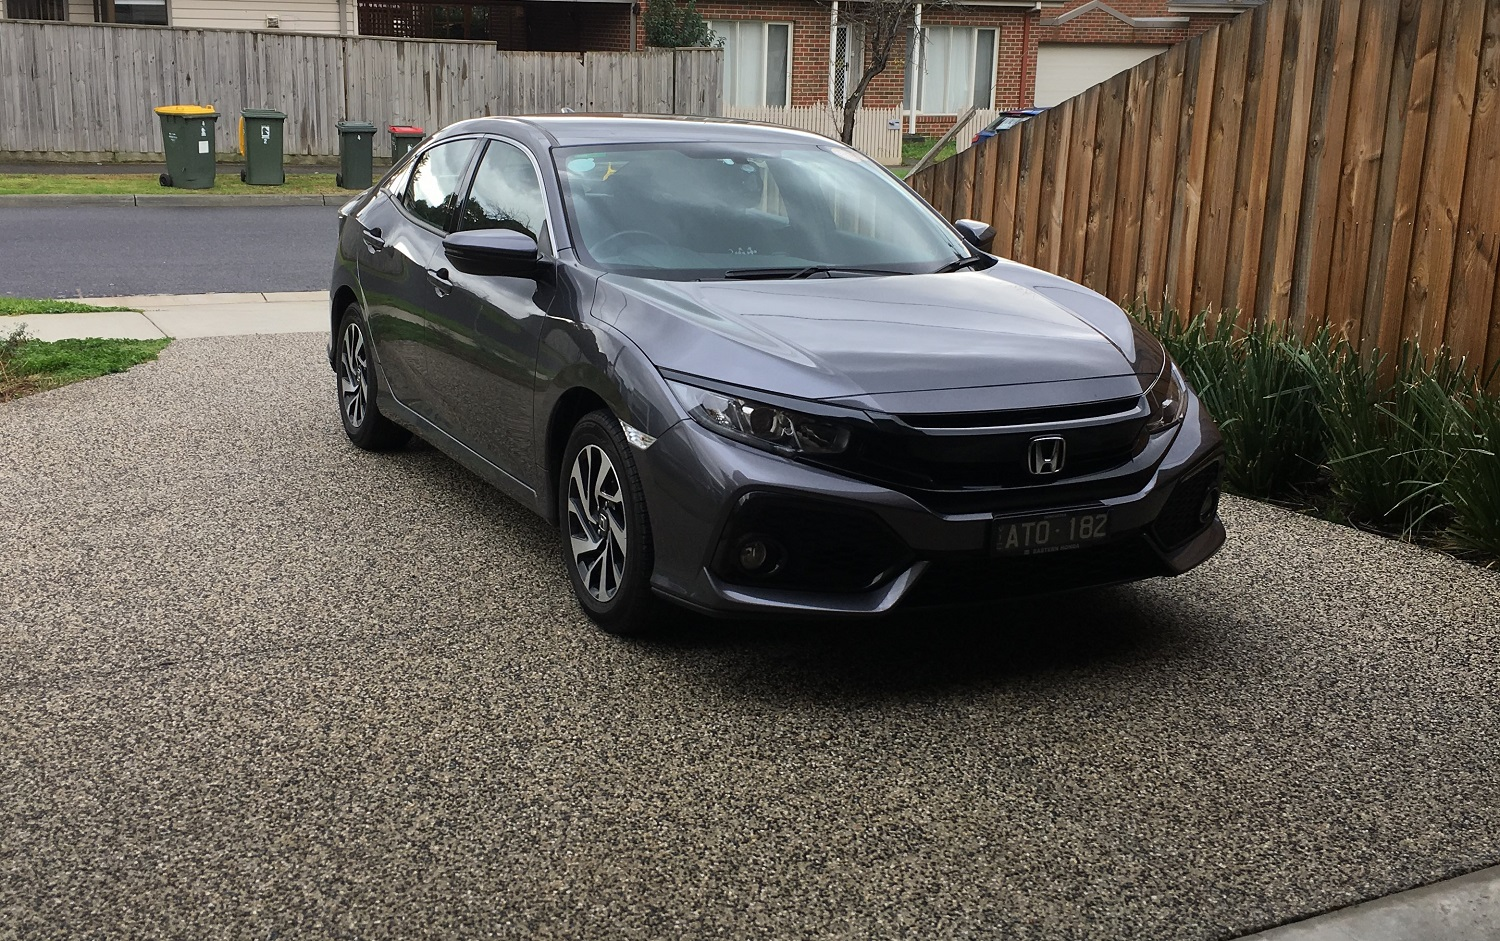 Picture of Jean-francois' 2018 Honda Civic